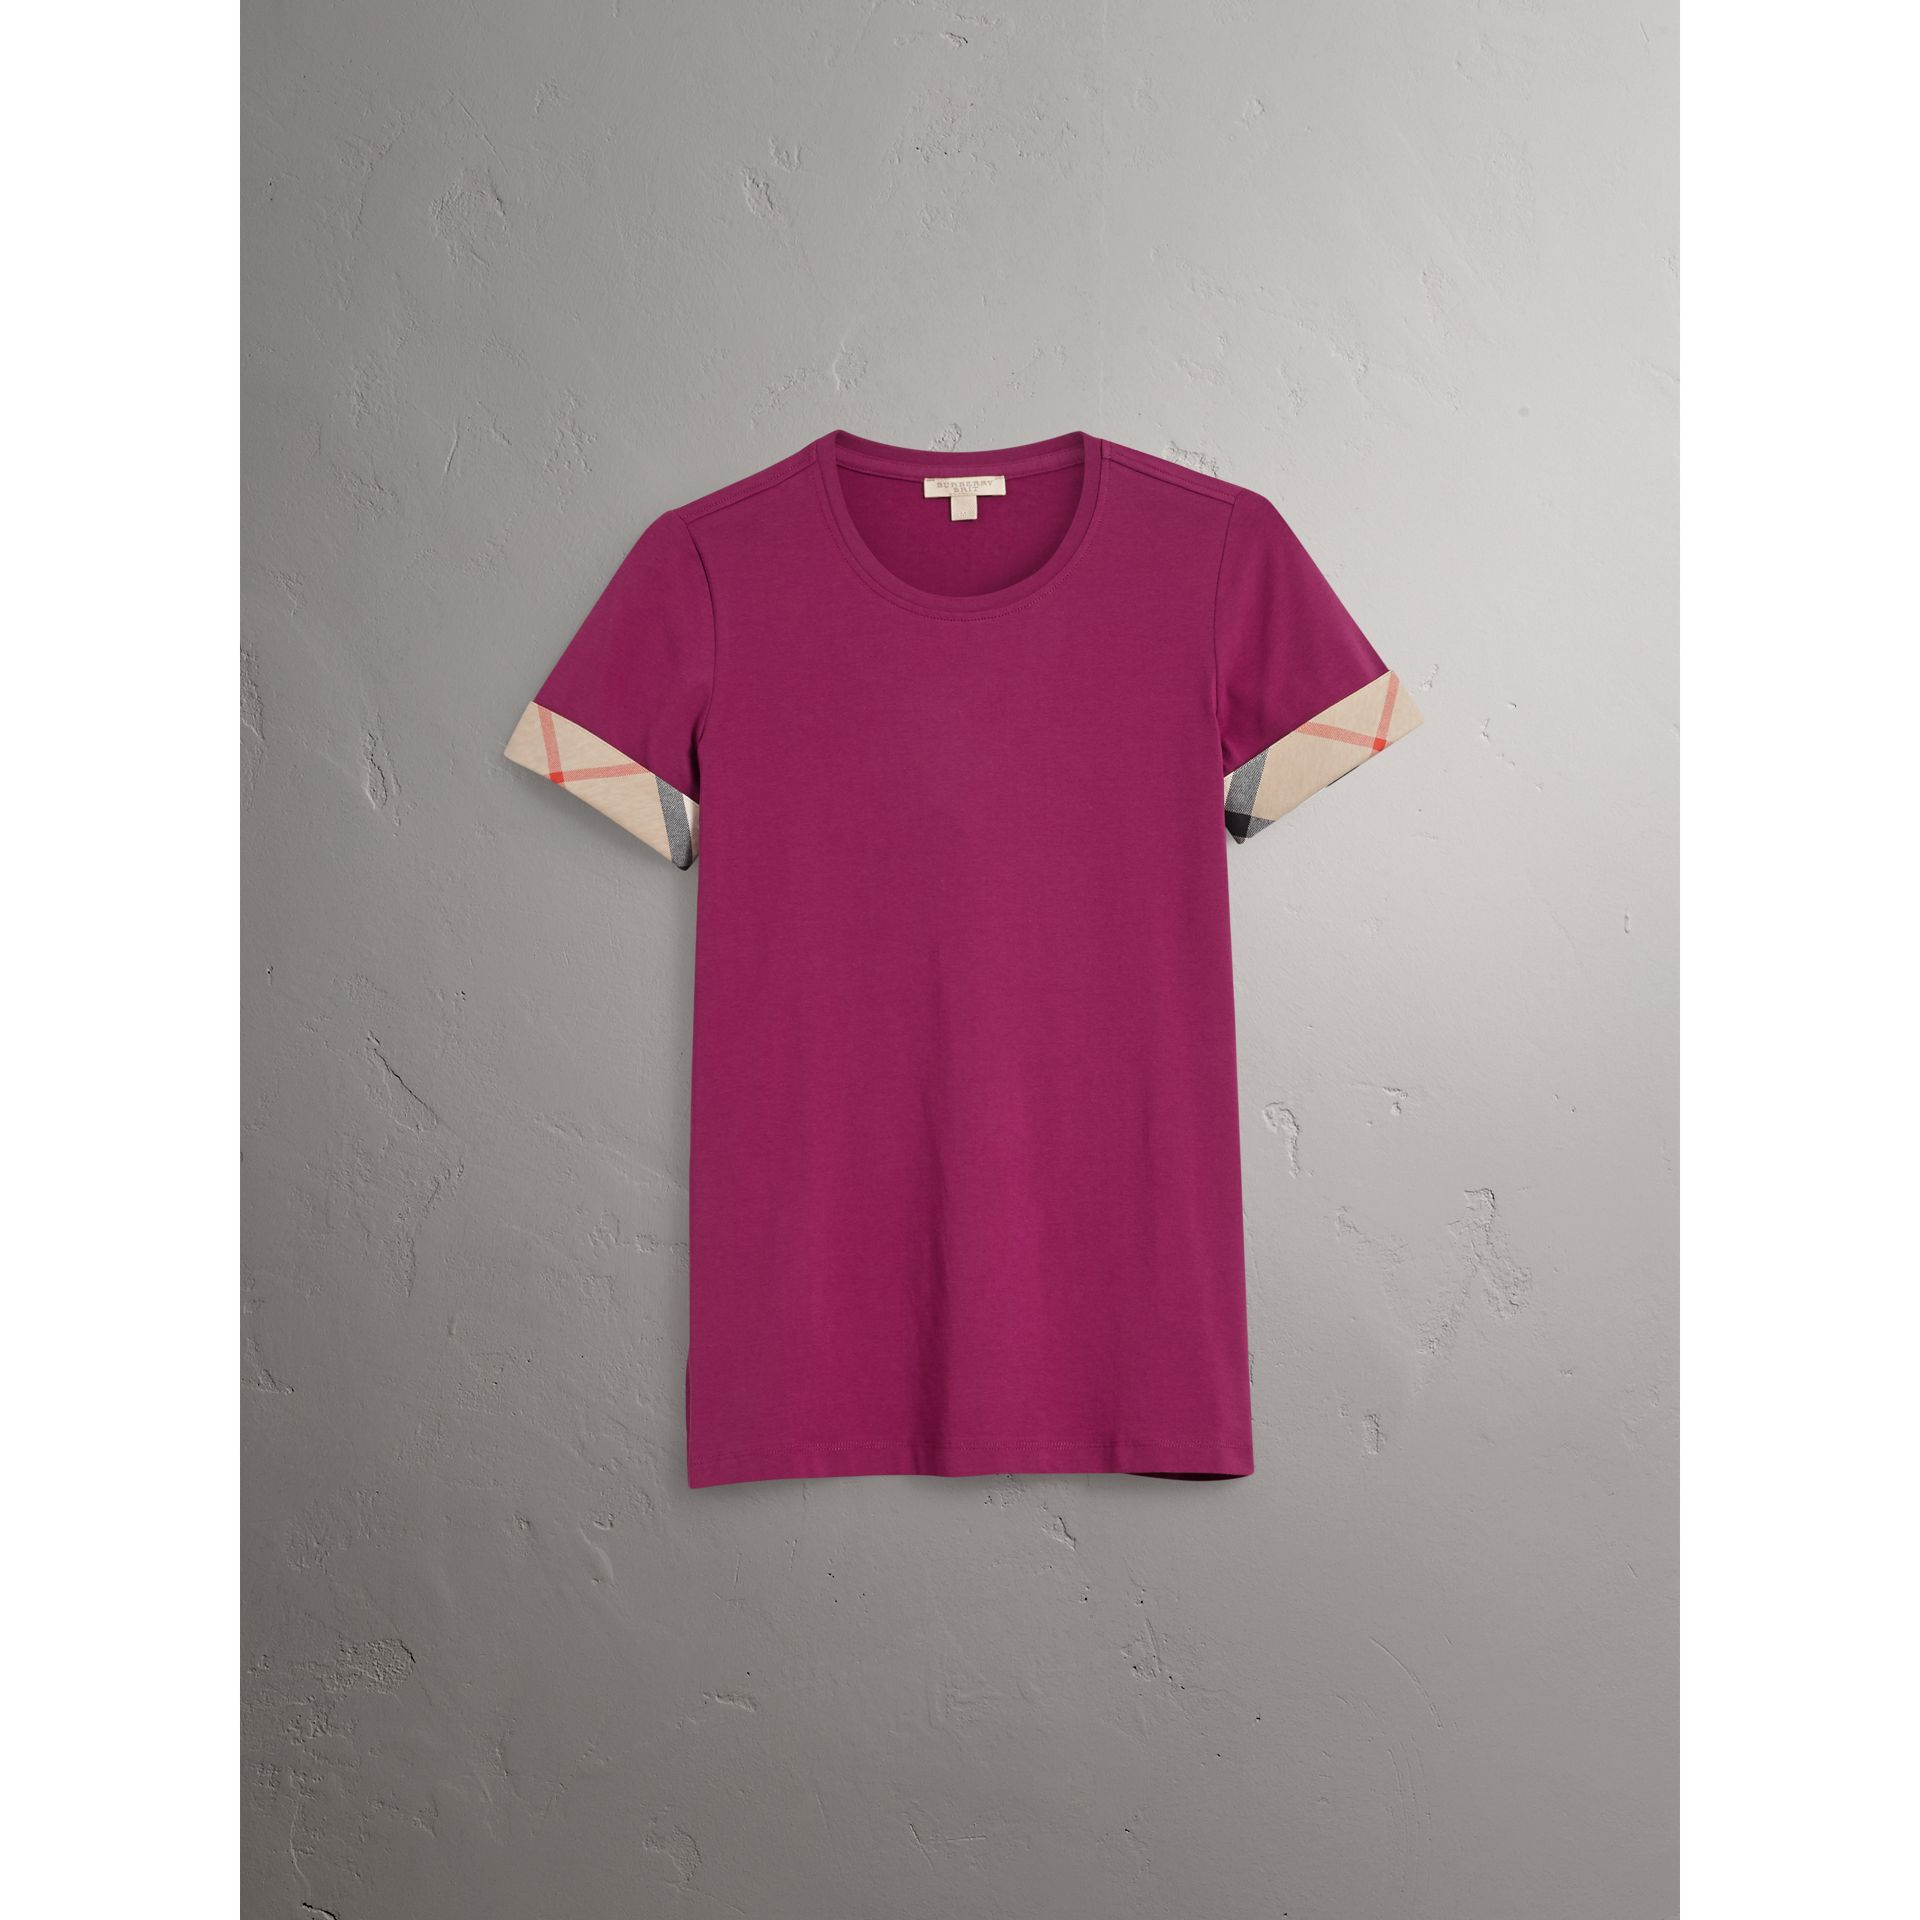 Check Cuff Stretch Cotton T-Shirt in Magenta Pink - Women | Burberry Canada - gallery image 4